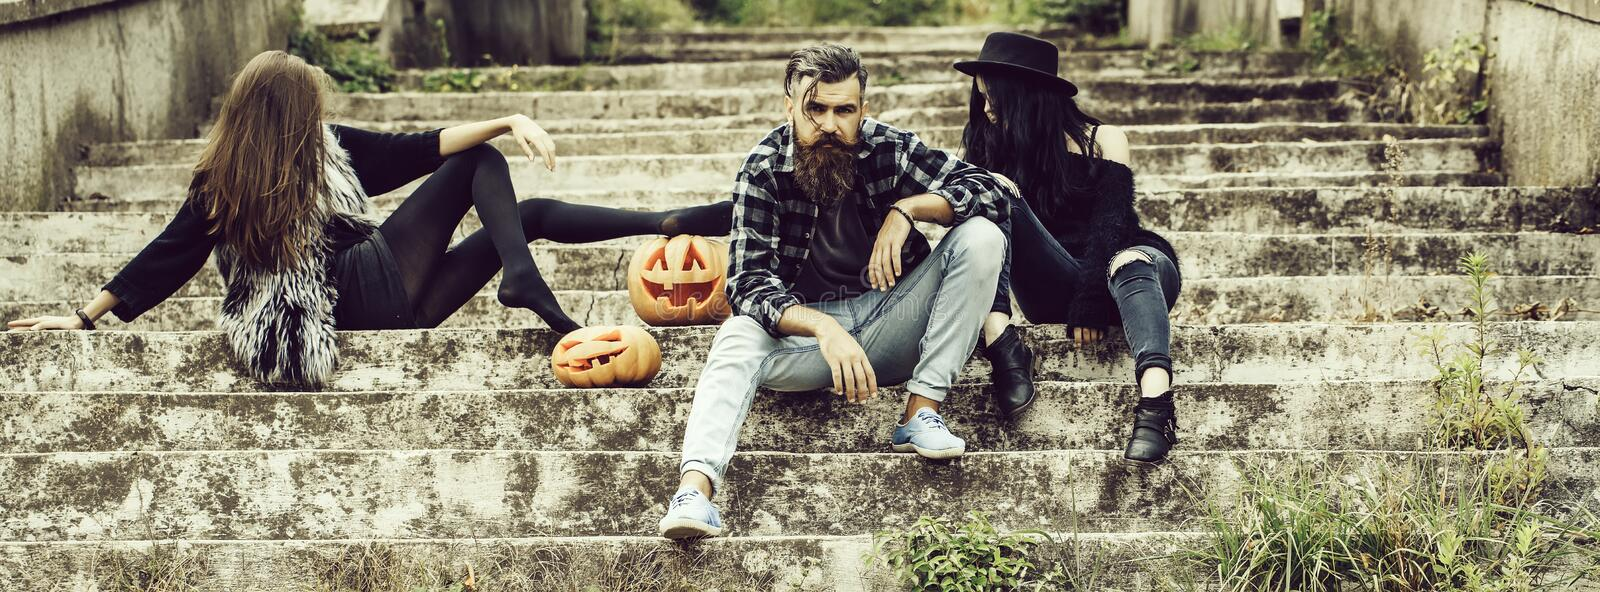 Halloween man and girls with pumpkin royalty free stock photo